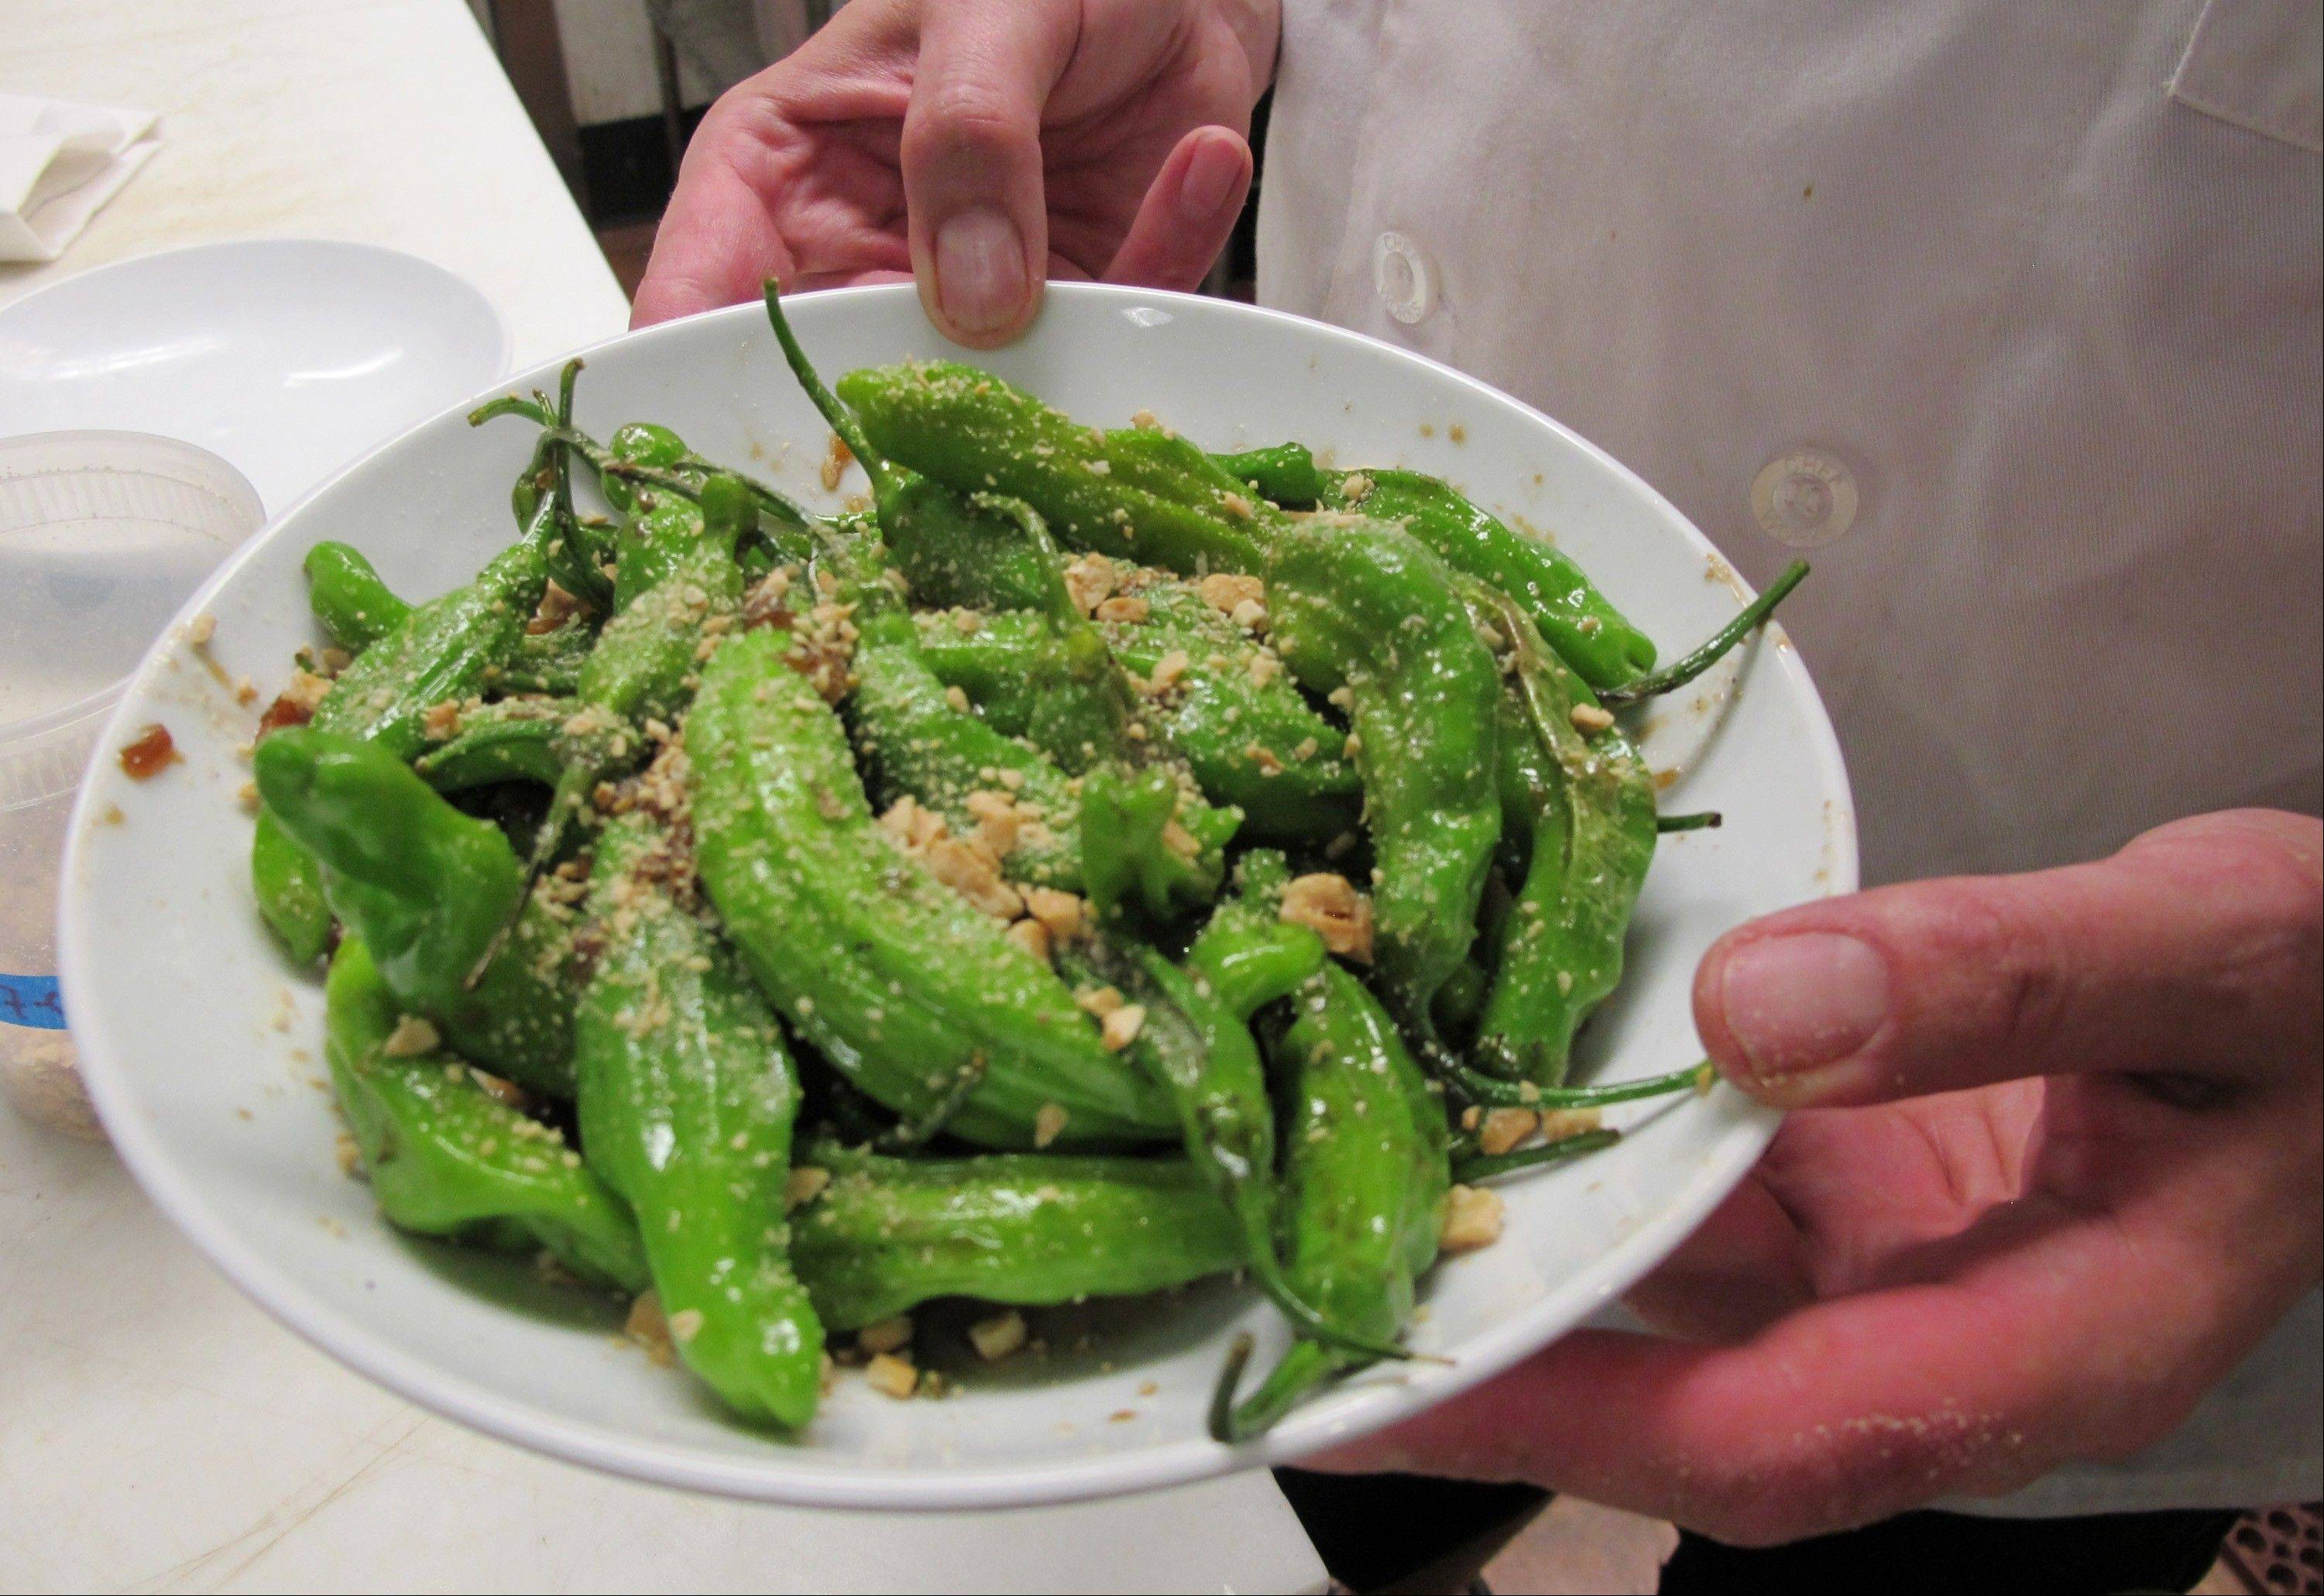 Chef Dan Jacobs holds a plate of shishito peppers at Roots Restaurant and Cellar in Milwaukee. Jacobs has noticed this summer's extreme heat has helped make some peppers extra-spicy.